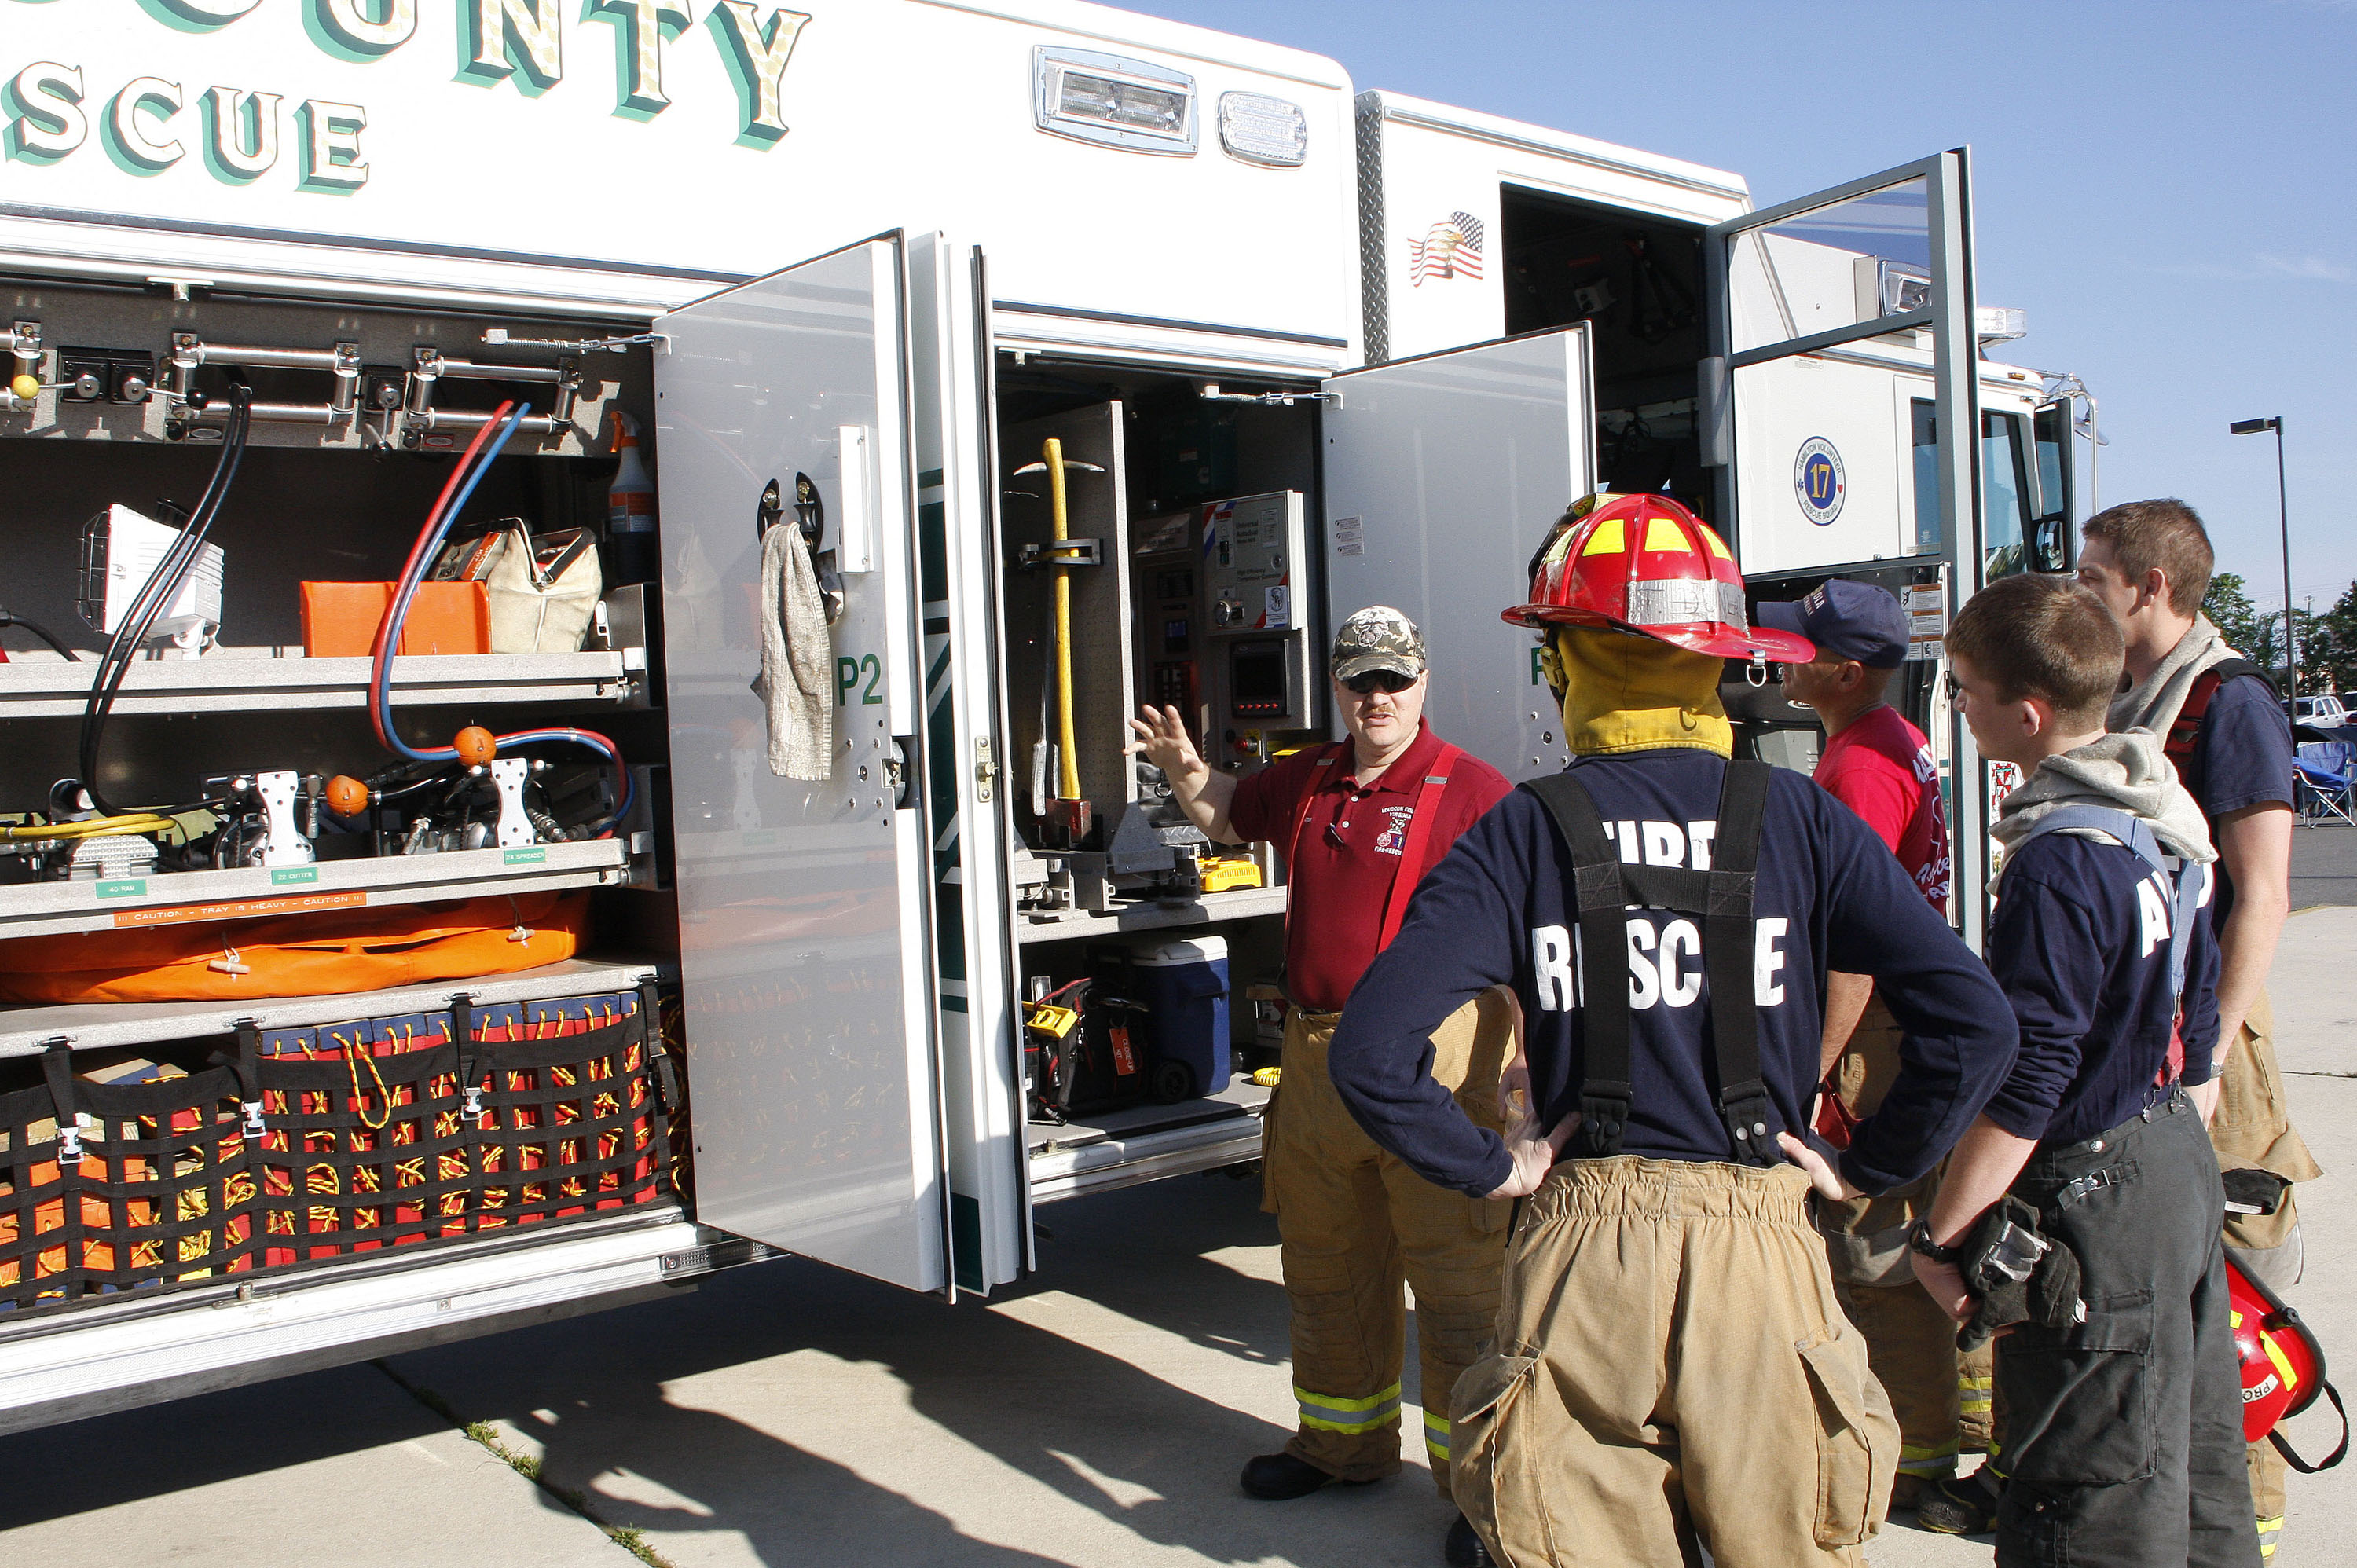 An instructor teaching other volunteers about the squad truck equipment